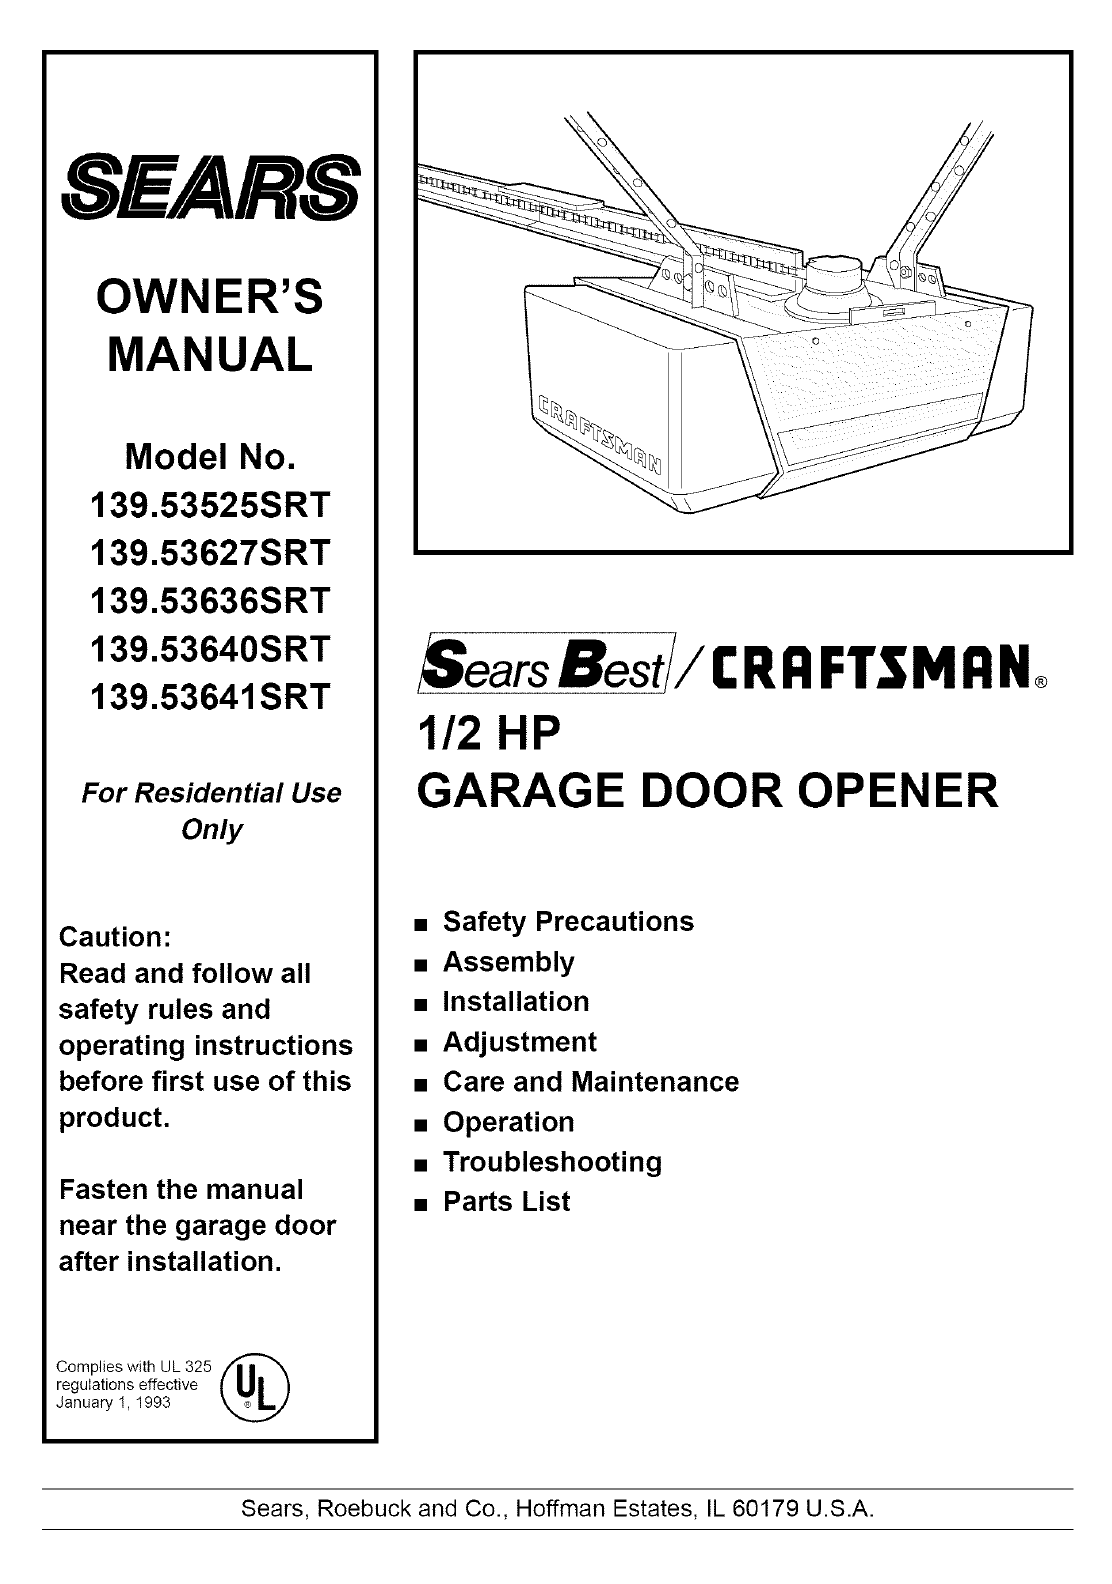 Sears garage door opener 13953627srt user guide manualsonline rubansaba